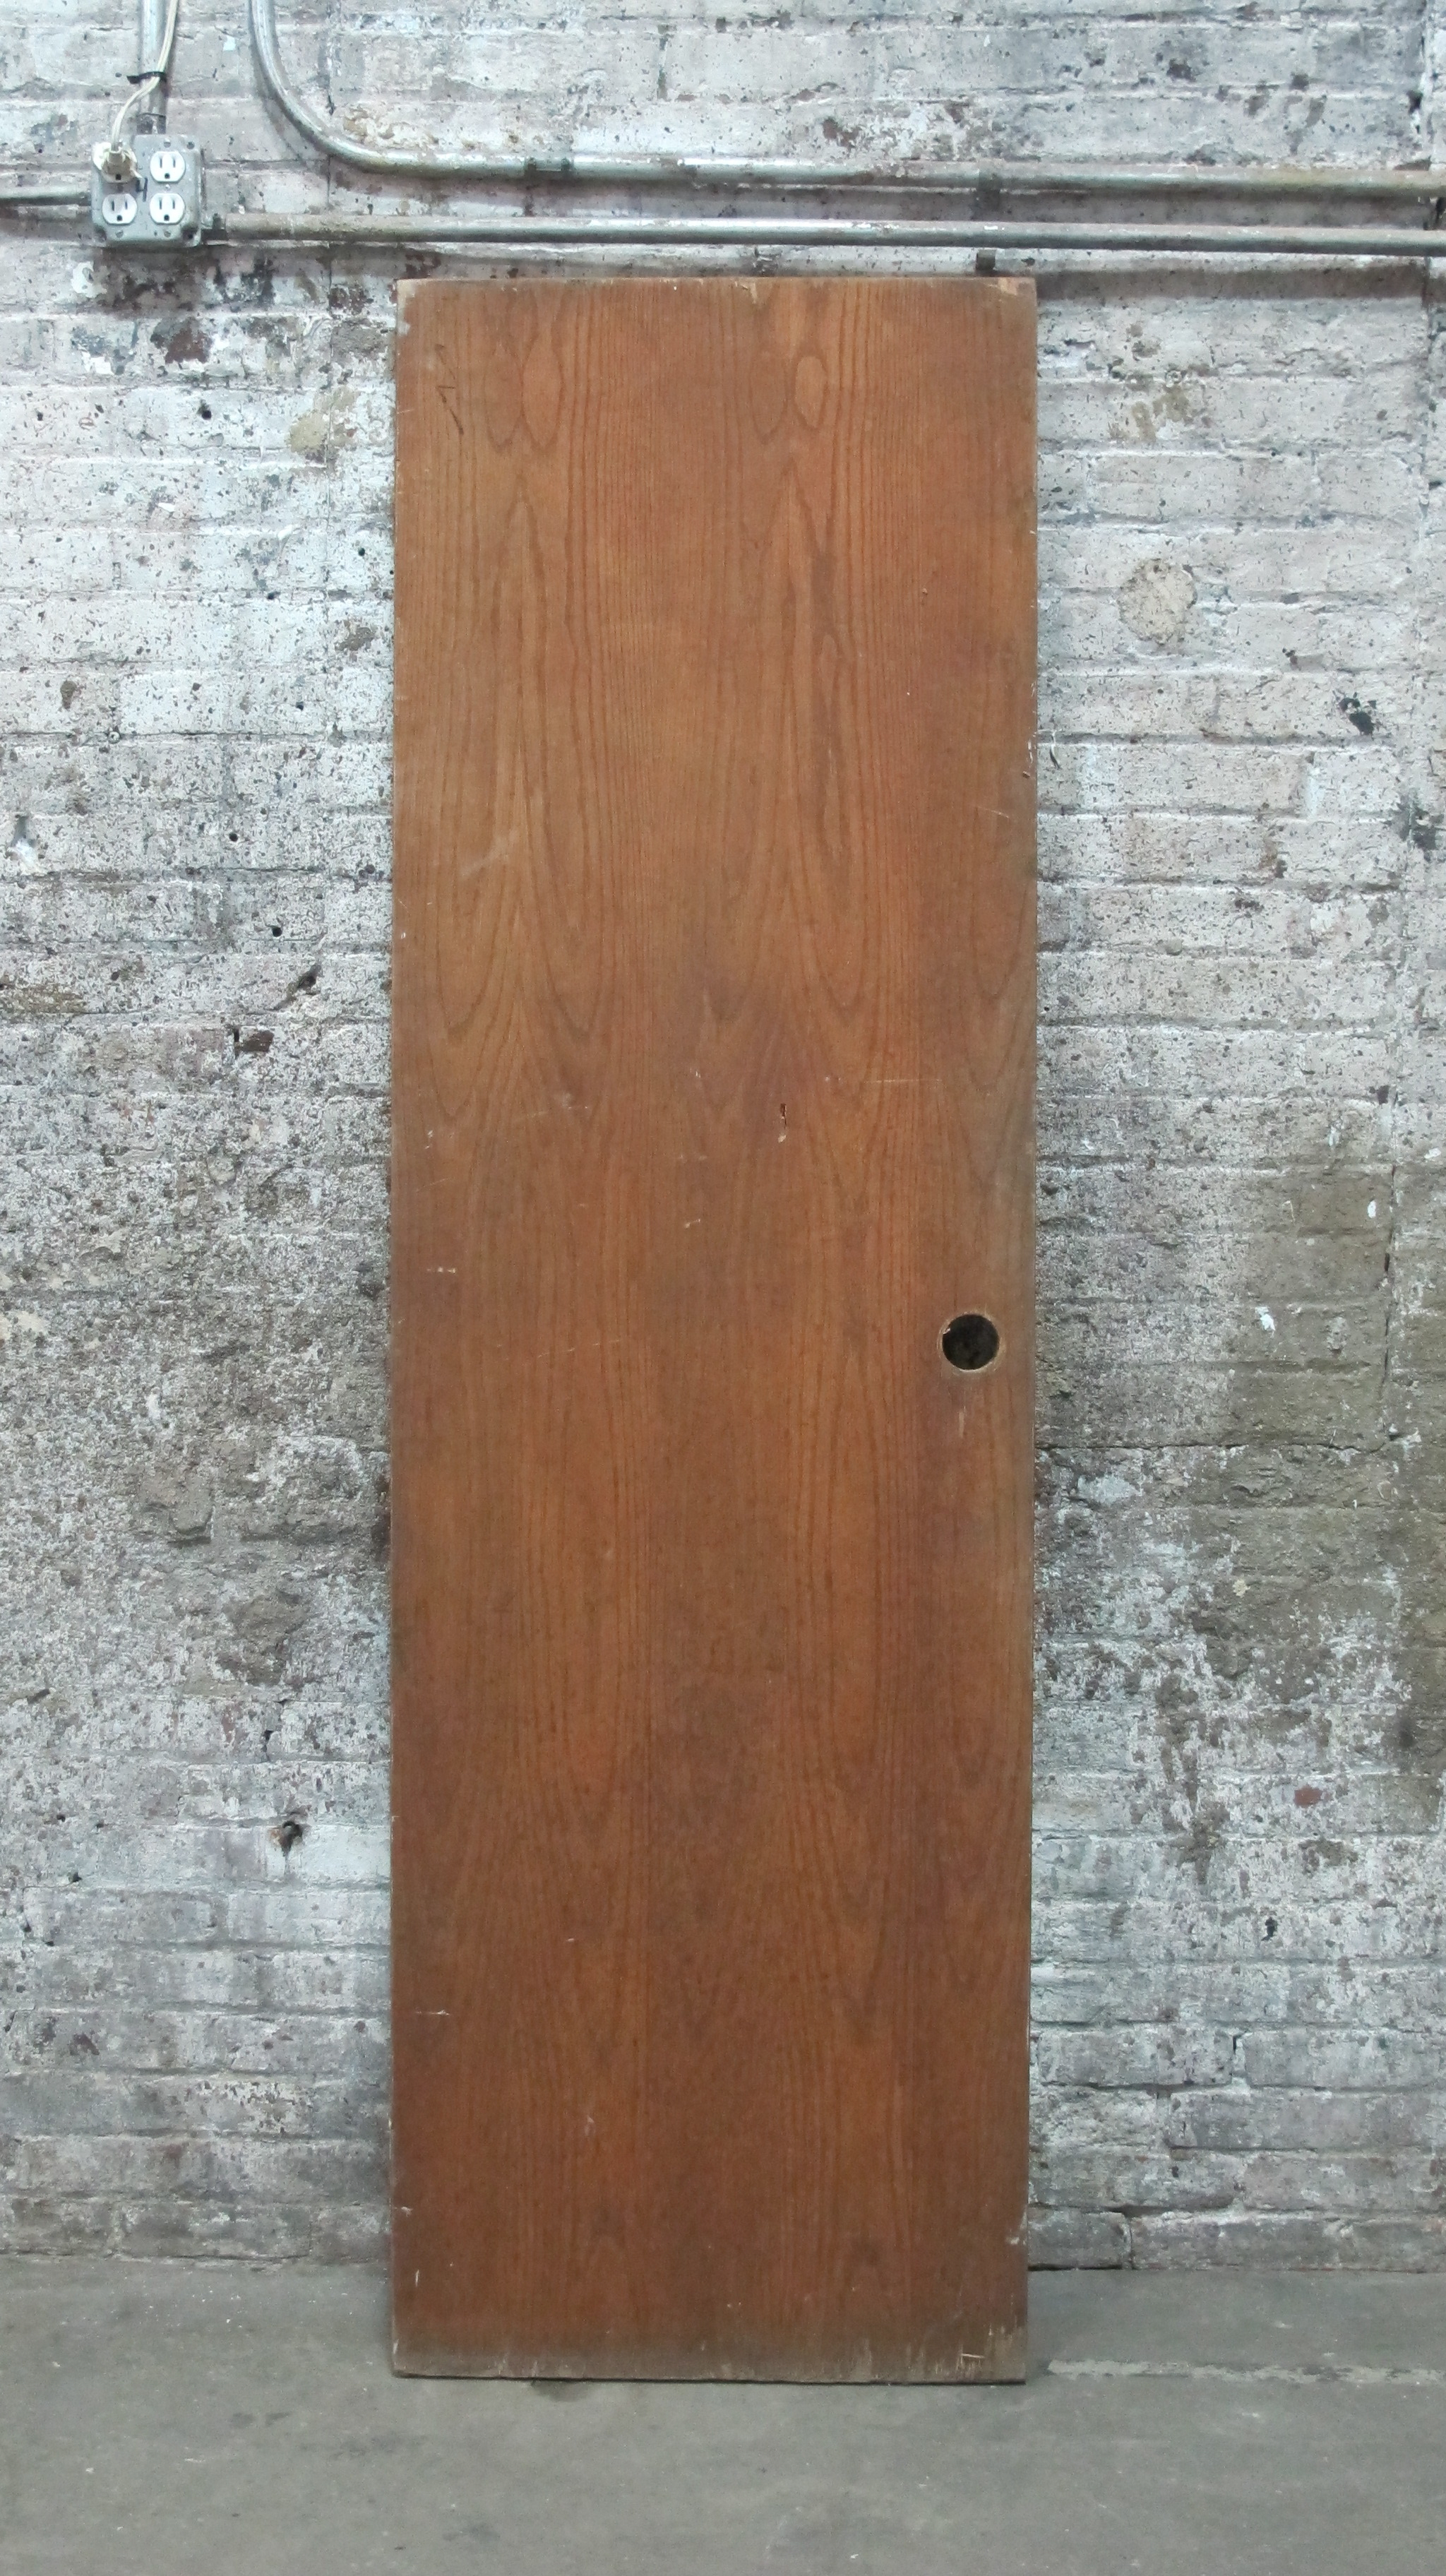 Knobless Wood Door $75